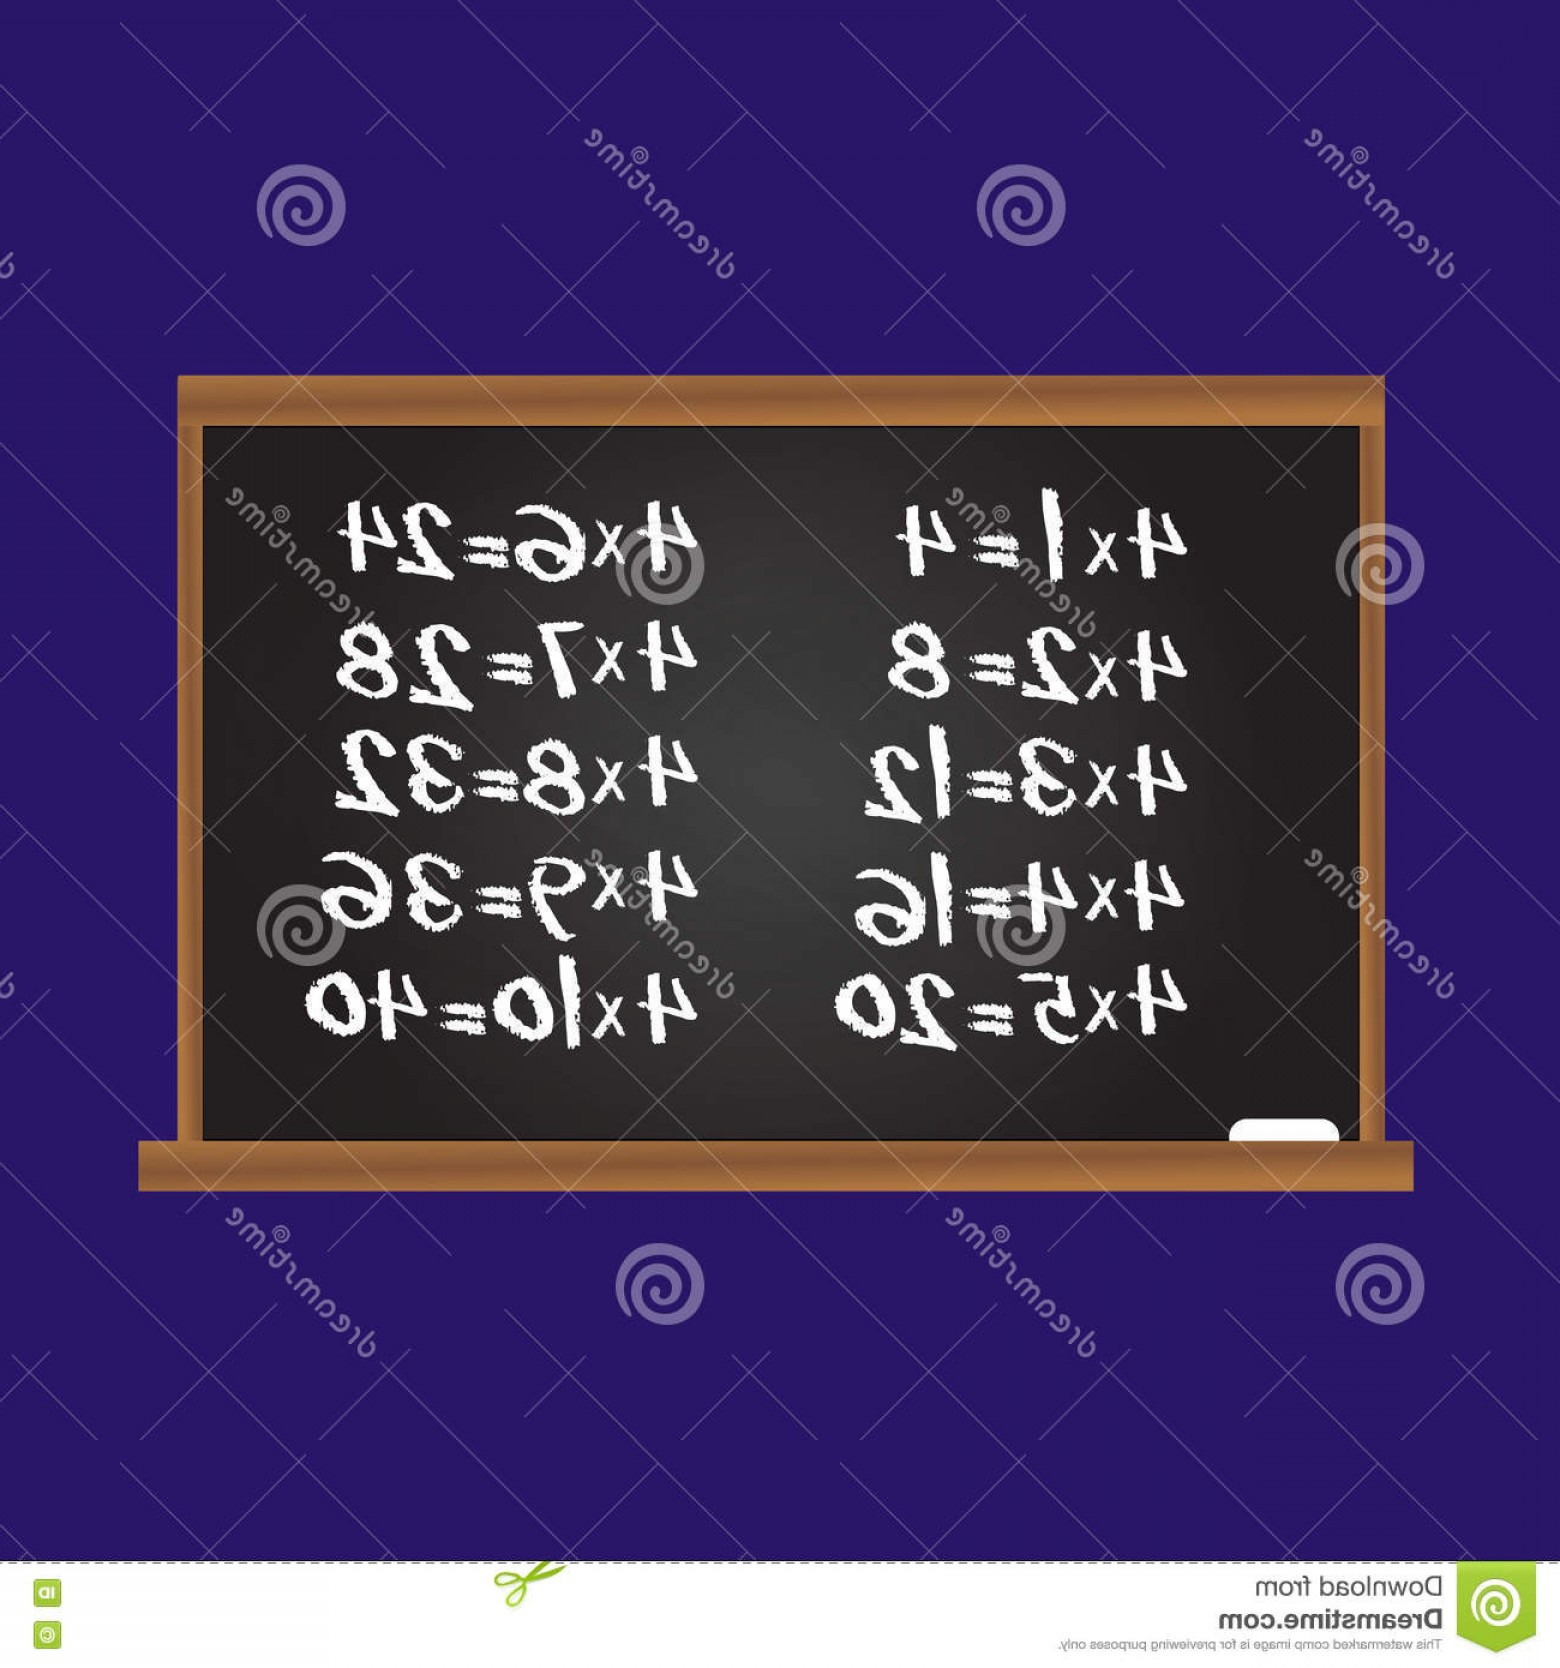 Row Vector Multiplication: Stock Illustration Multiplication Table Number Four Row School Chalk Board Educational Illustration Kids Children Vector Image